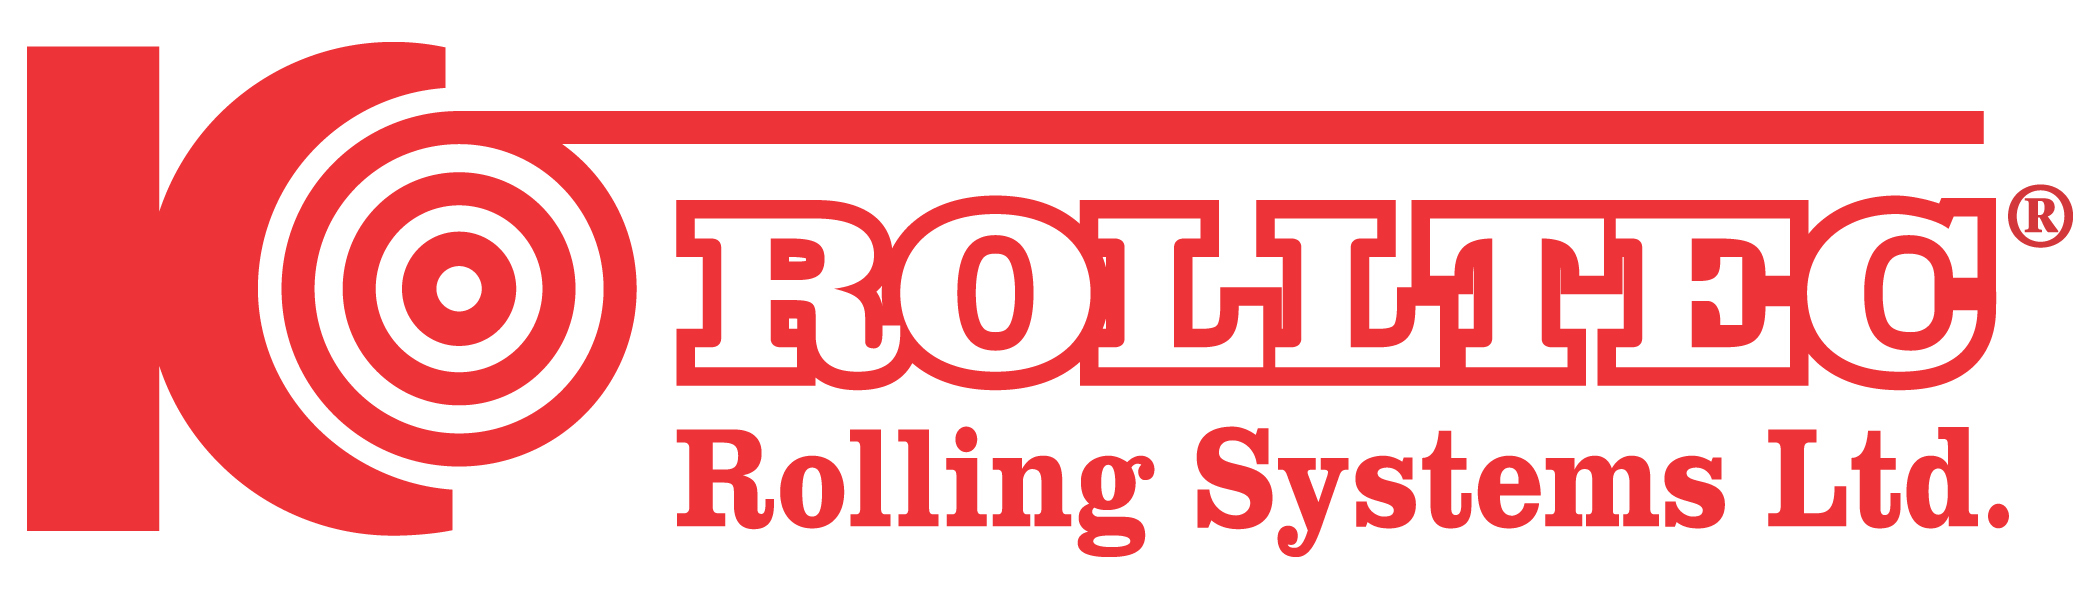 Rolltec Rolling Systems Logo